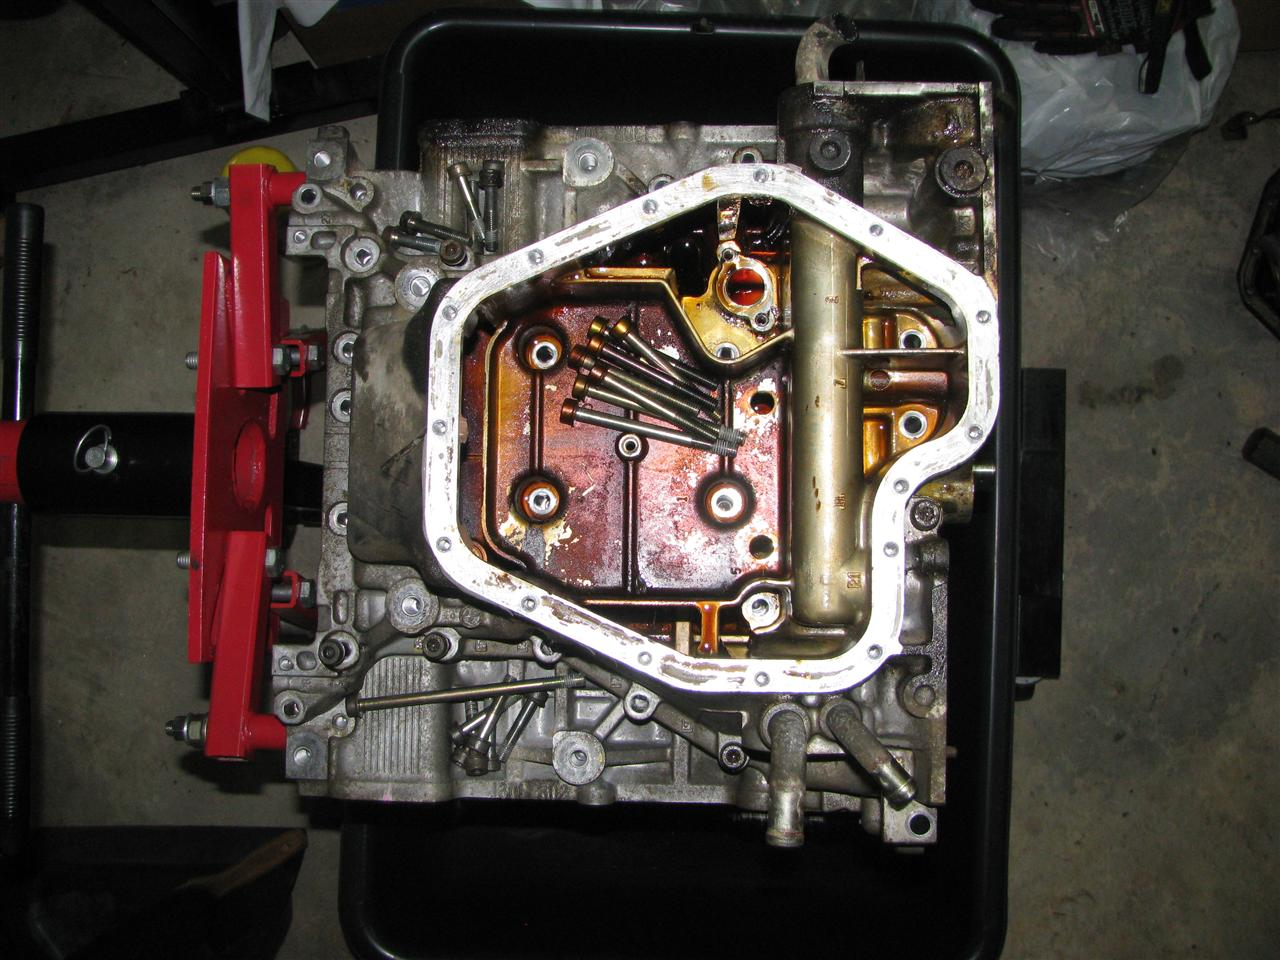 How To Check Transmission Oil >> Upper oil pan removal subaru outback h6 - Subaru Outback - Subaru Outback Forums